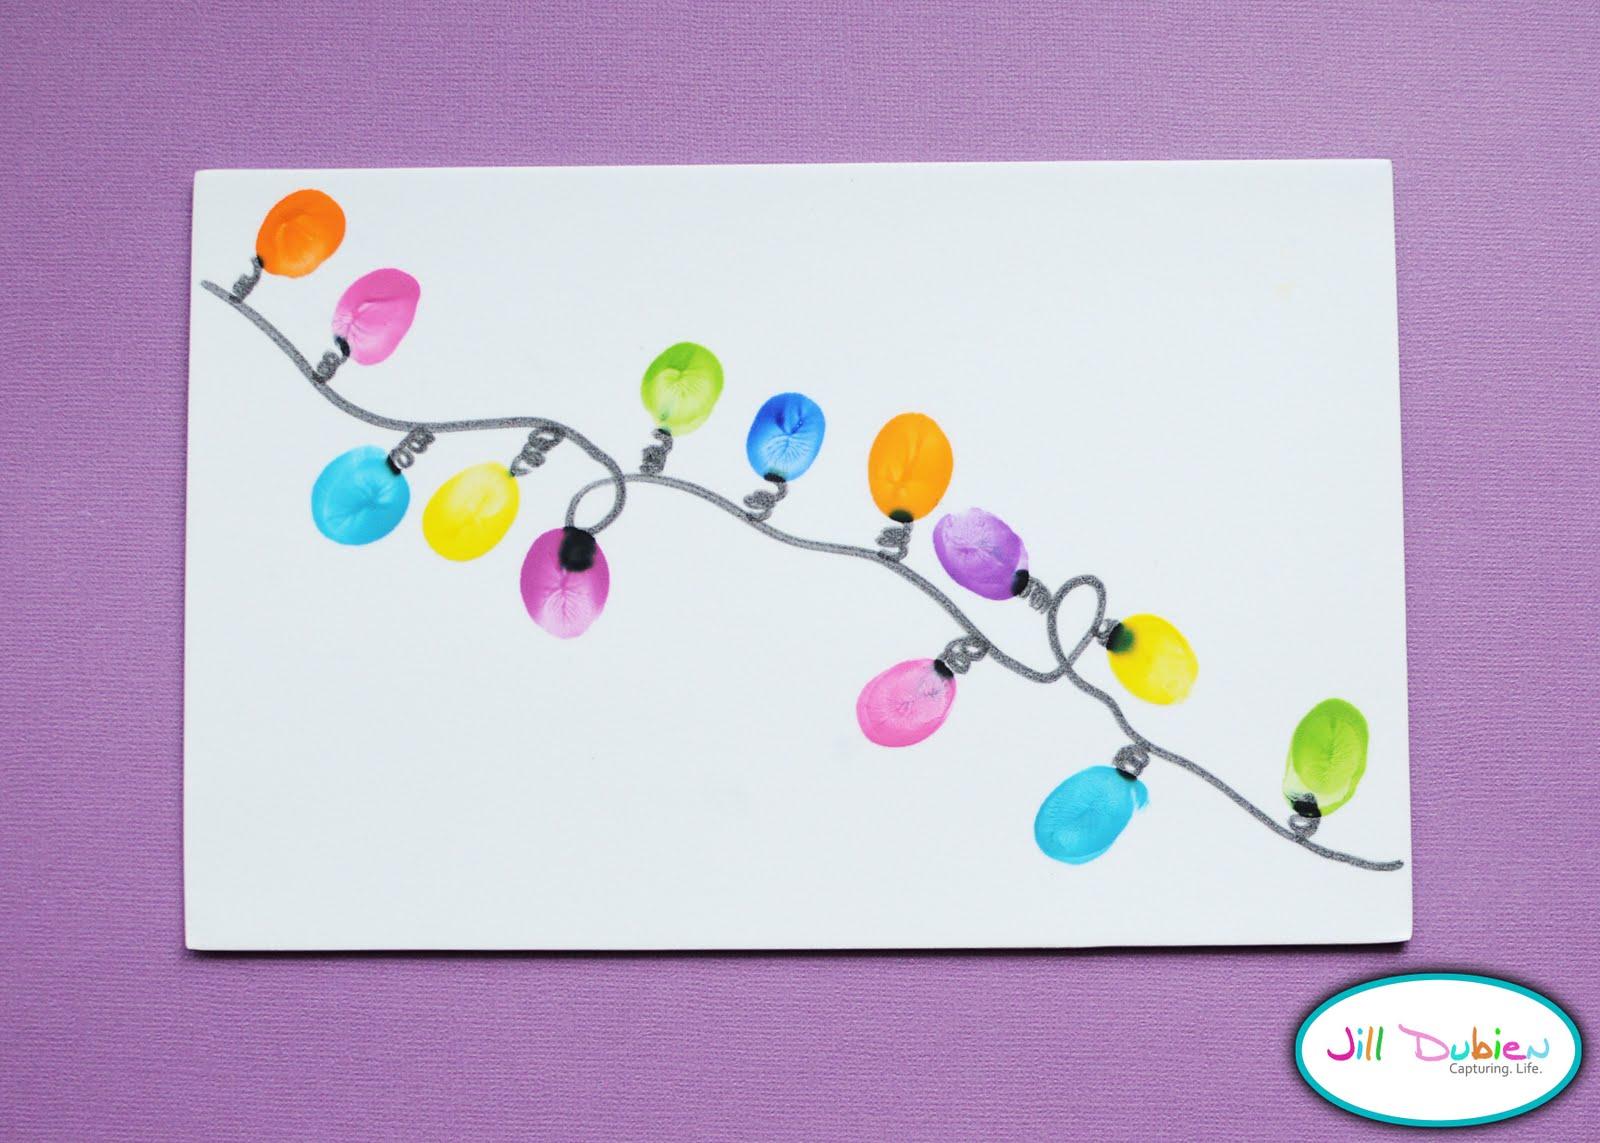 Thumbprint Christmas Light Crafts 1600 x 1143